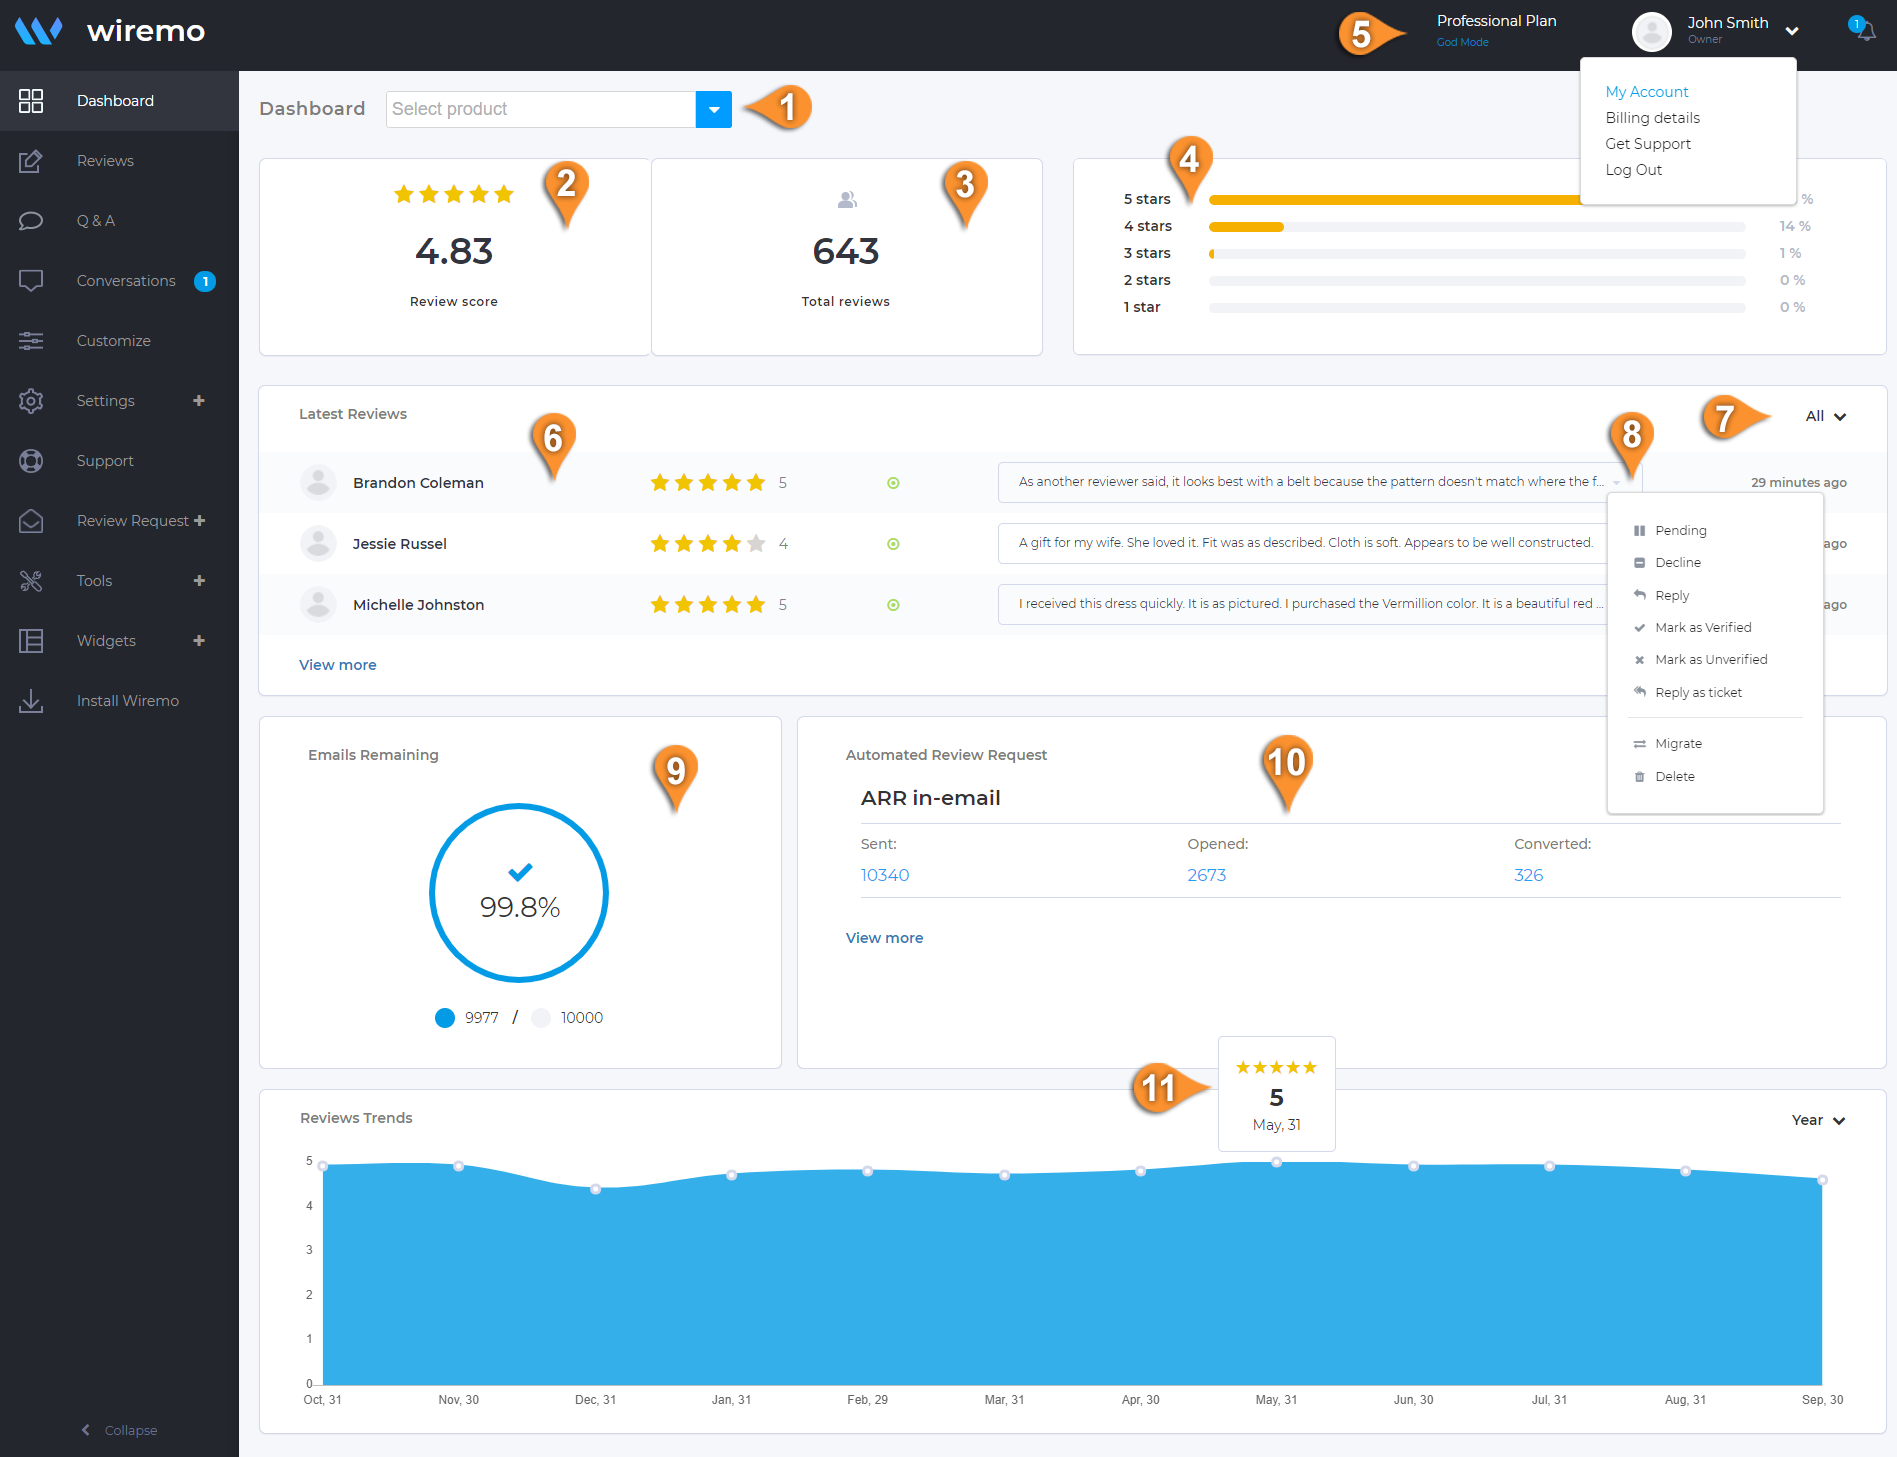 How to Use Wiremo Dashboard